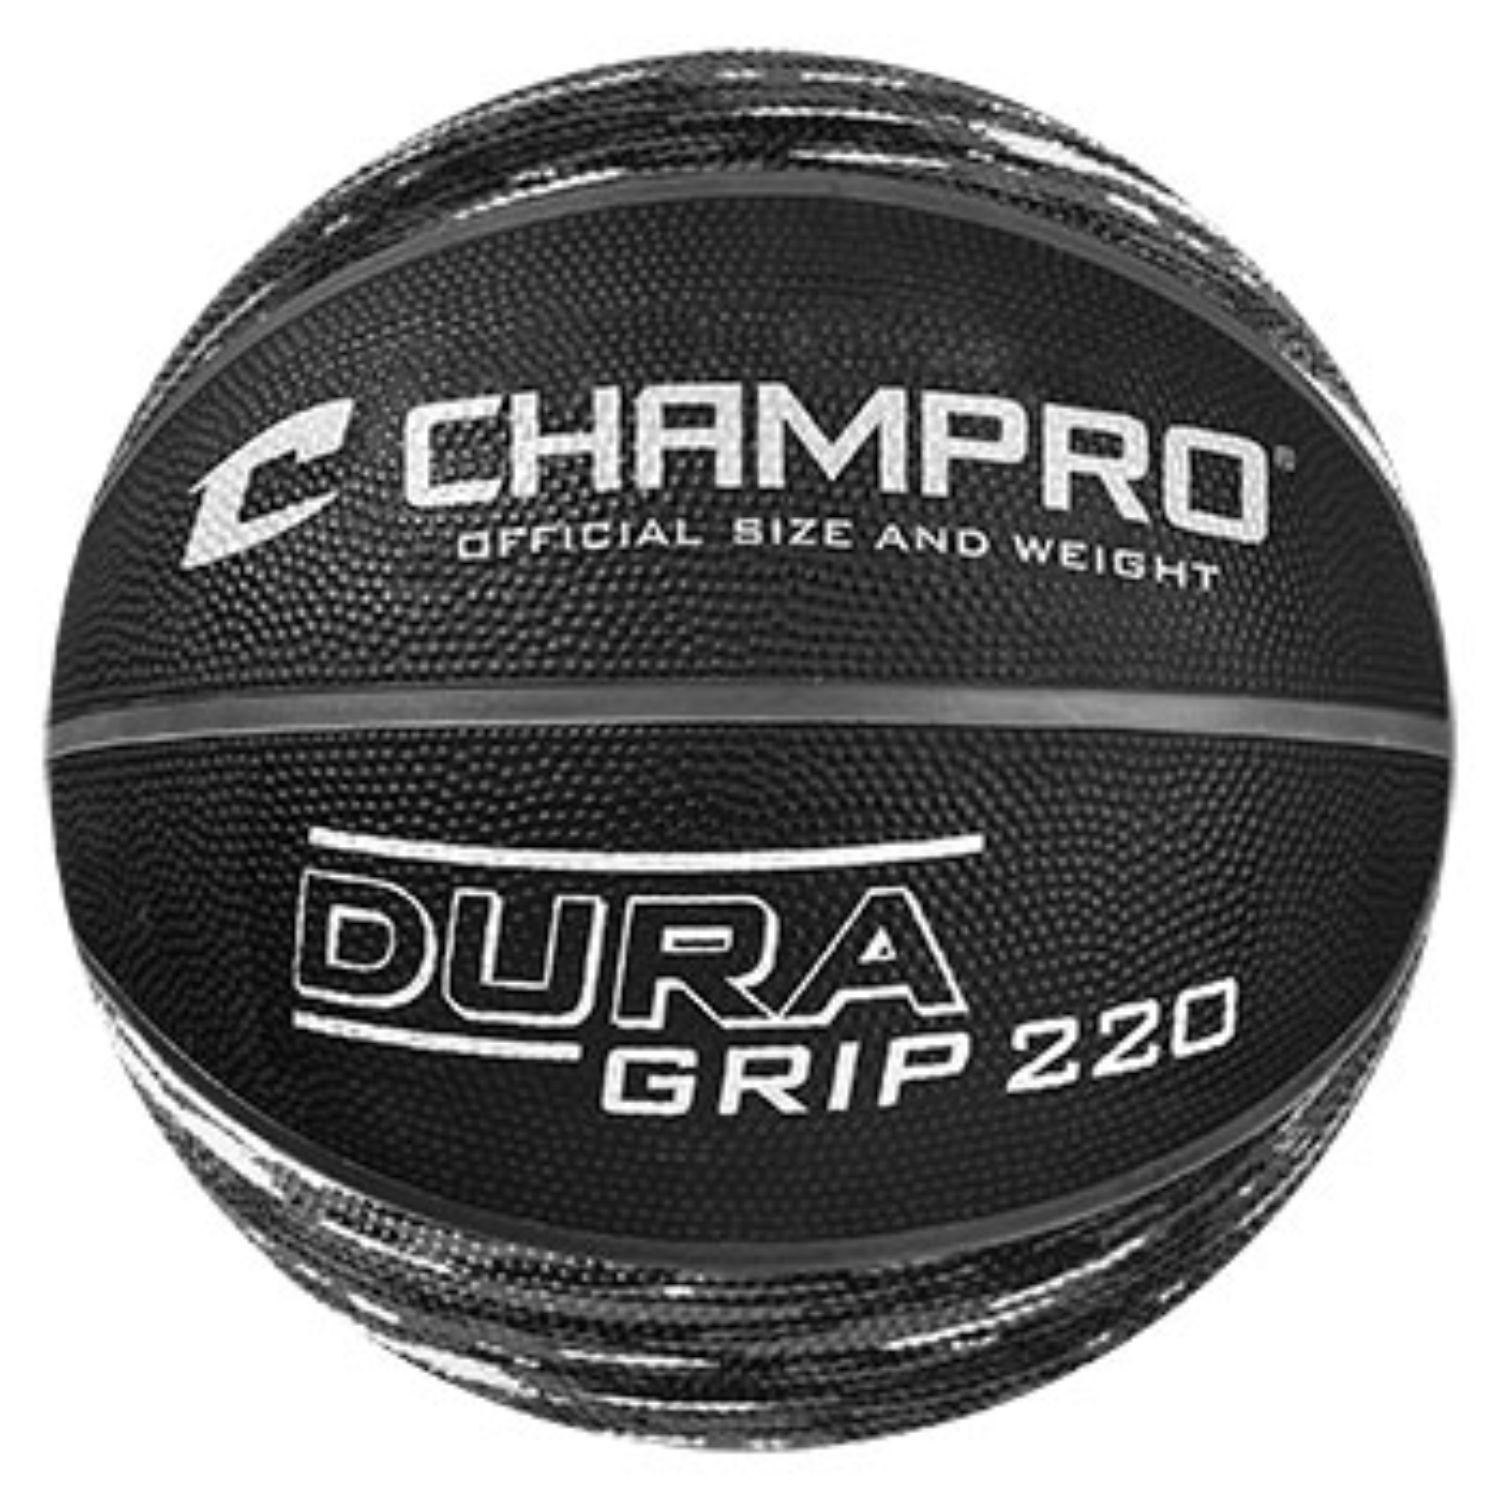 Champro Dura Grip 220 Official Size Basketball Camo Charcoal